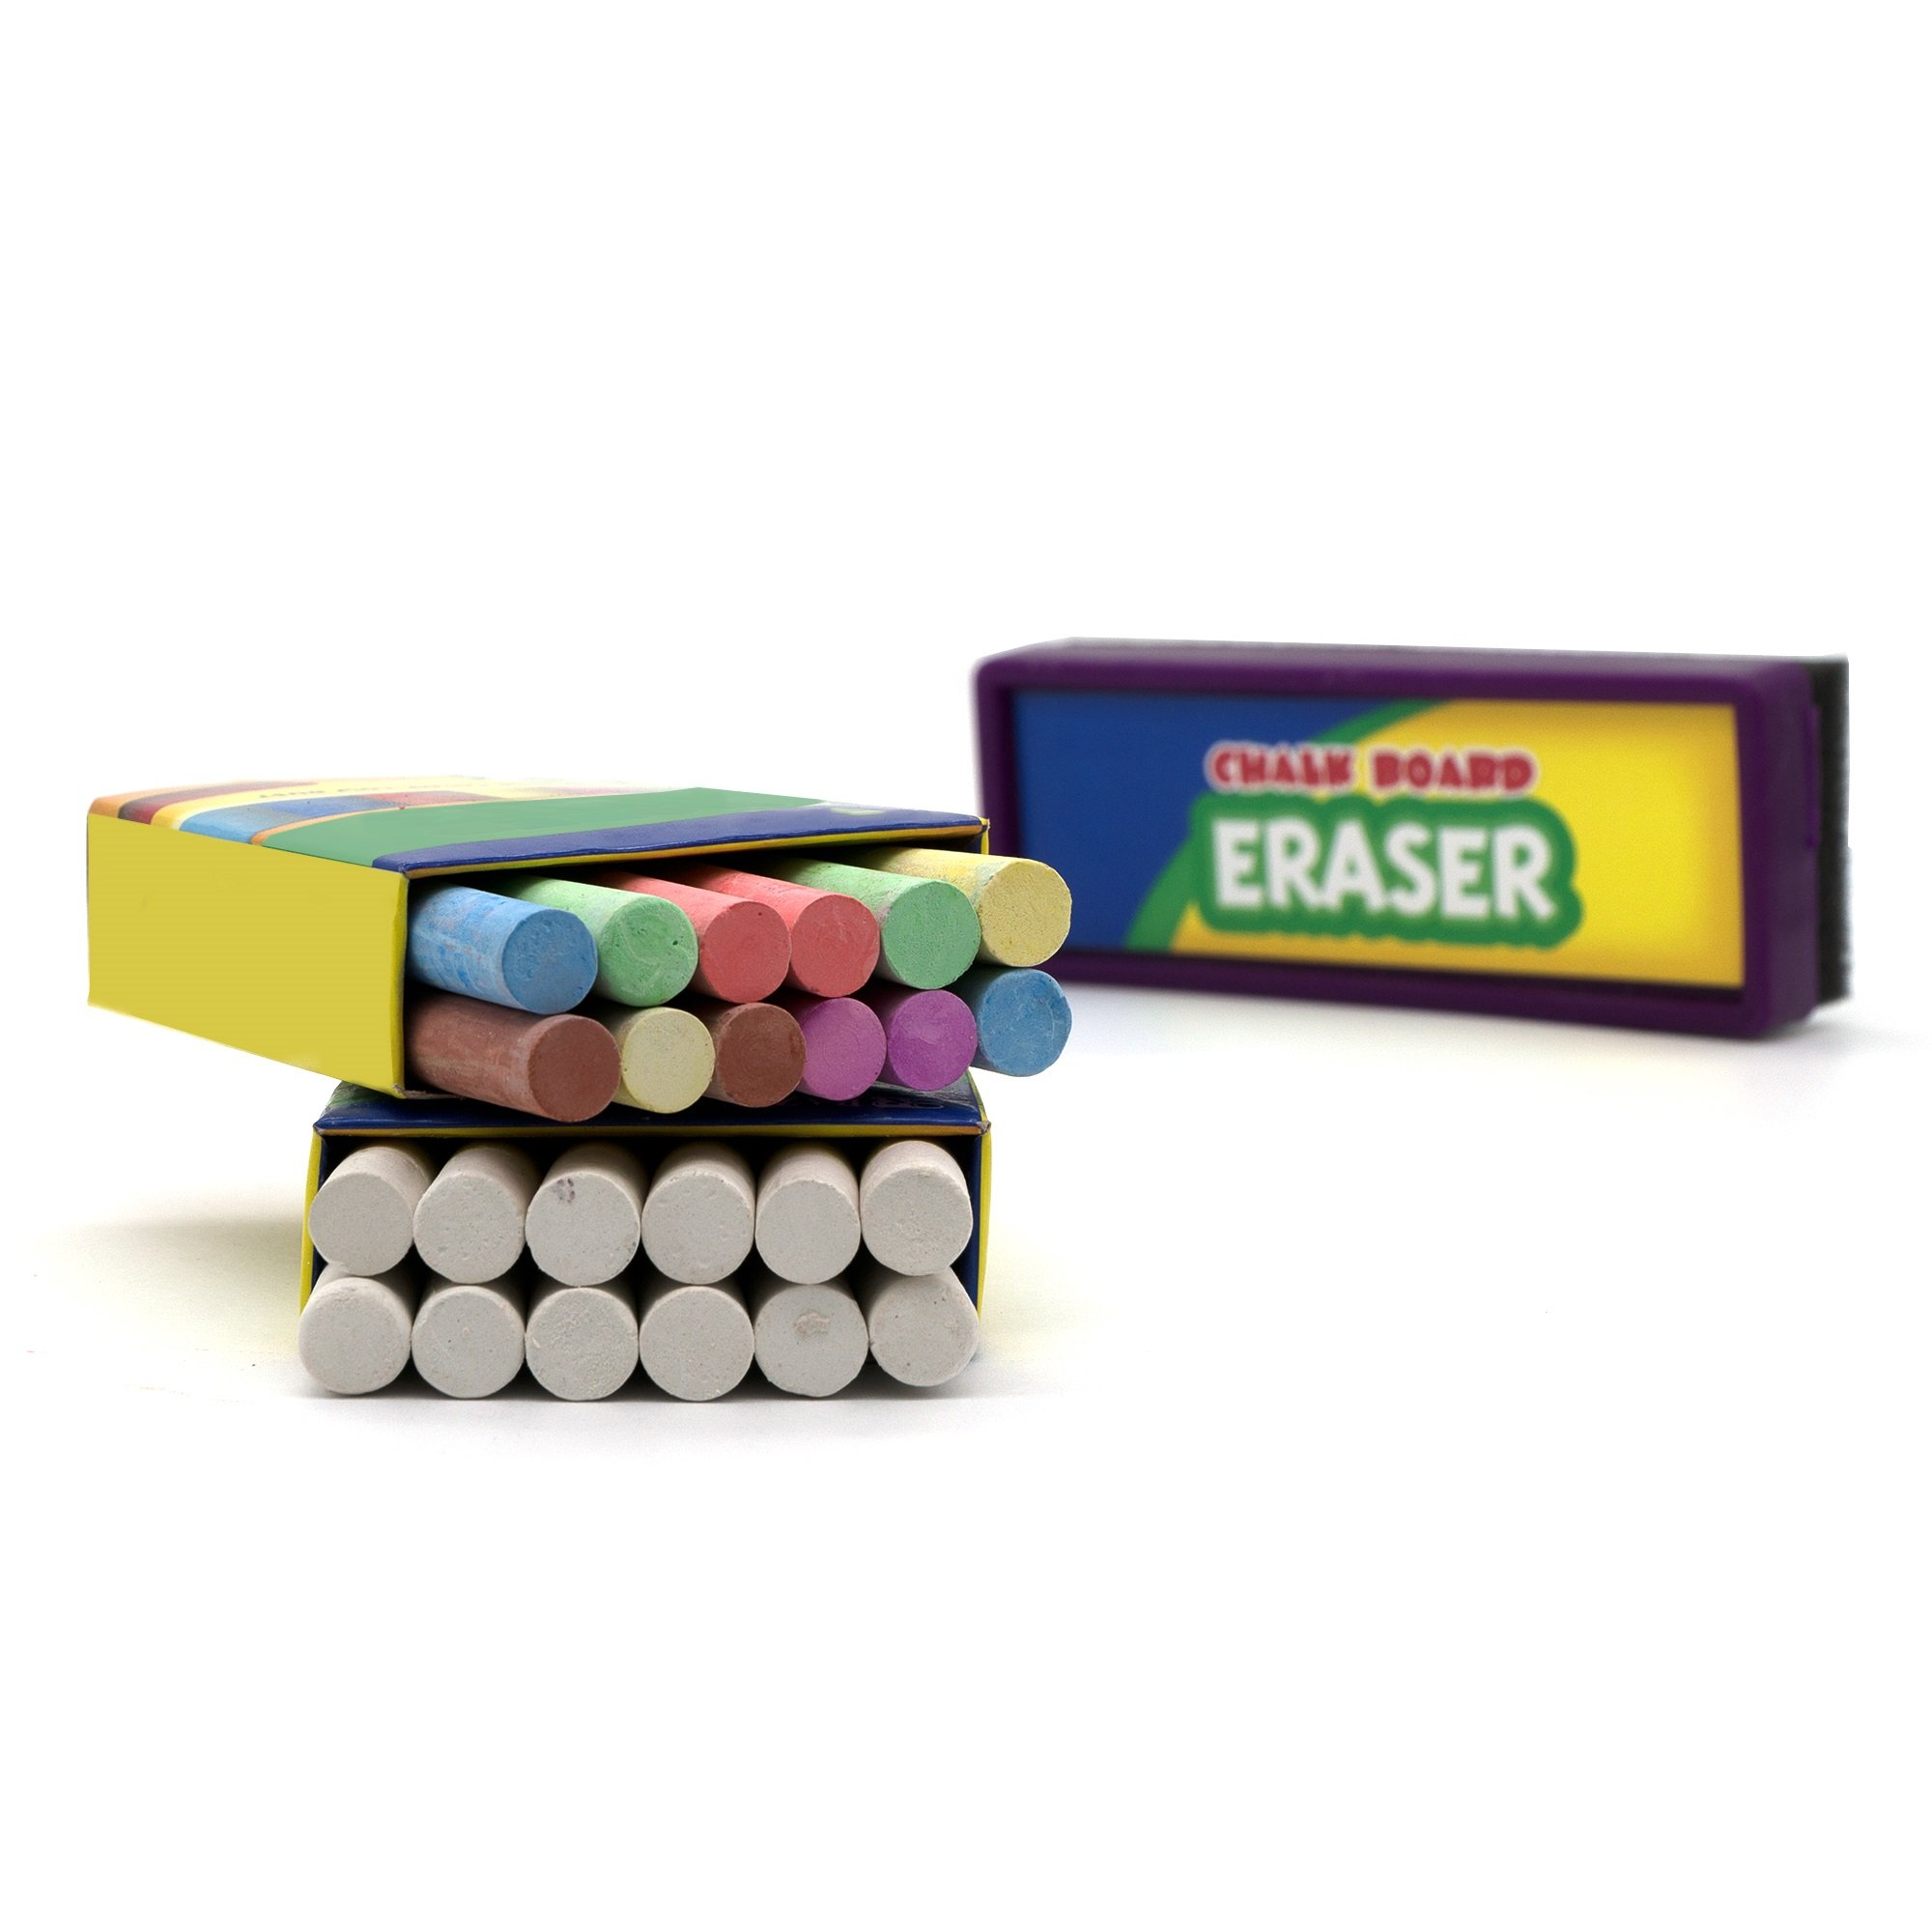 Emraw Eraser 12 White Chalk Dustless Chalk Non-Toxic 12 Color Chalkboard School Office and Sidewalk Outdoor Chalk Block Bundle for Art and Home Board Chalk with Eraser Pack of 25 by Emraw (Image #1)